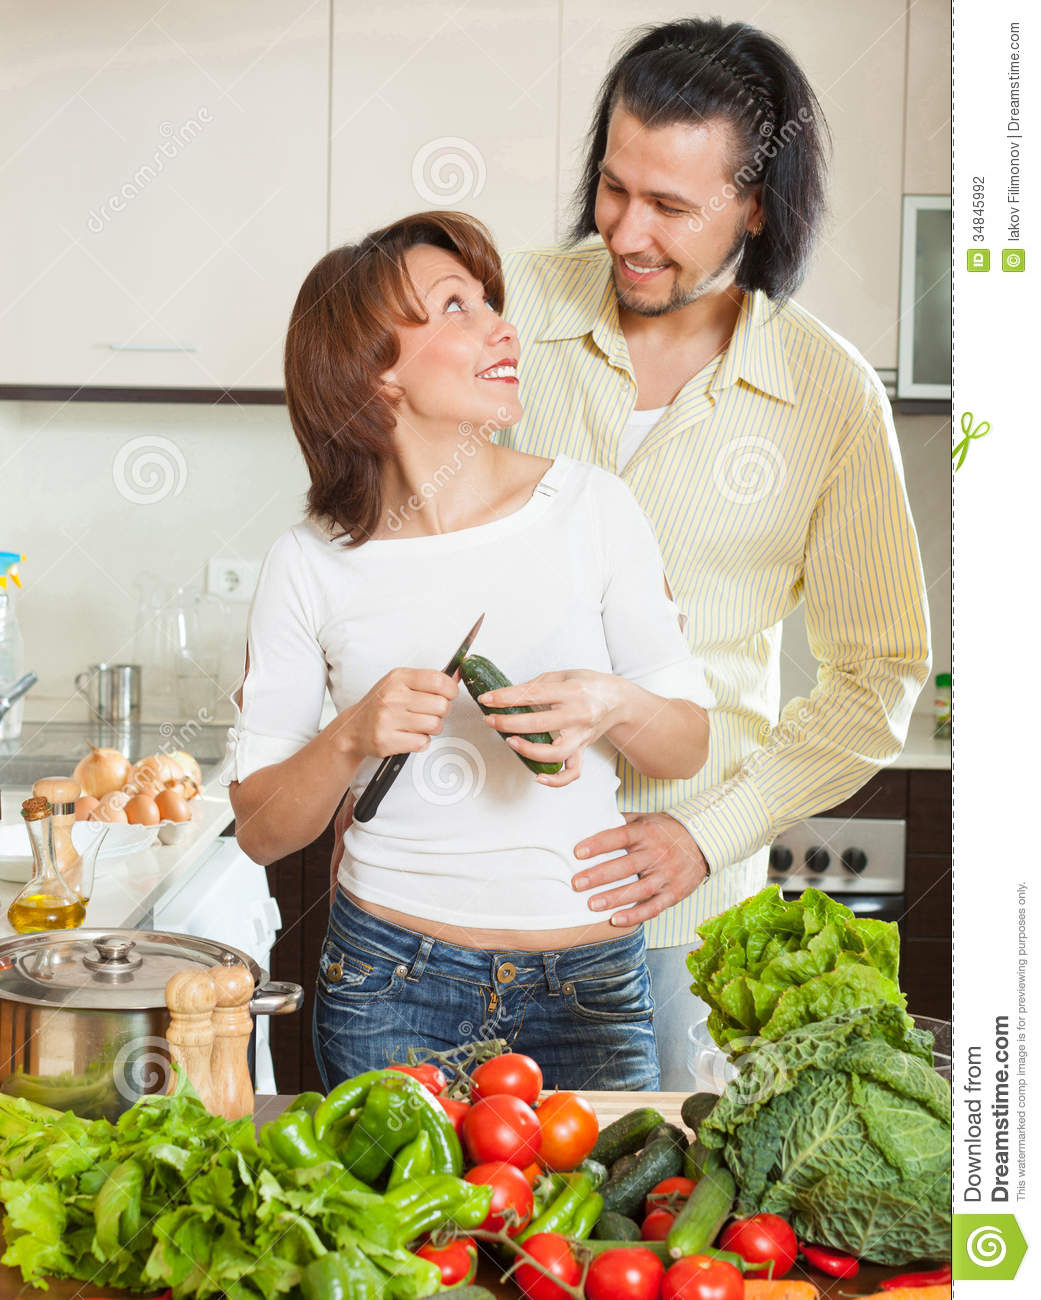 Women Kitchen: A Man And A Woman With Vegetables In The Kitchen Stock